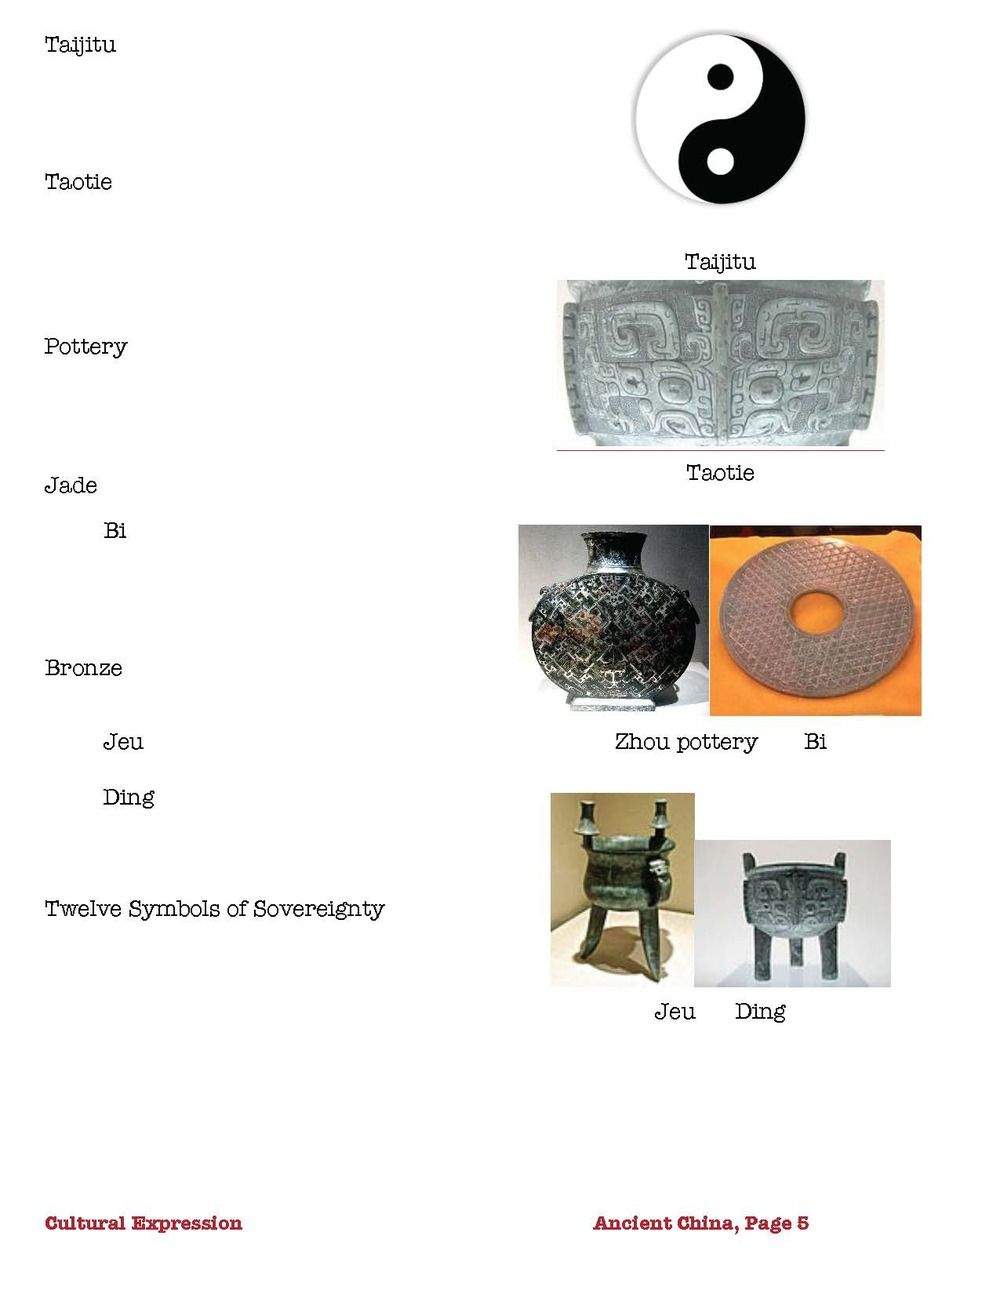 HOCE- Ancient China Elements_Page_5.jpg